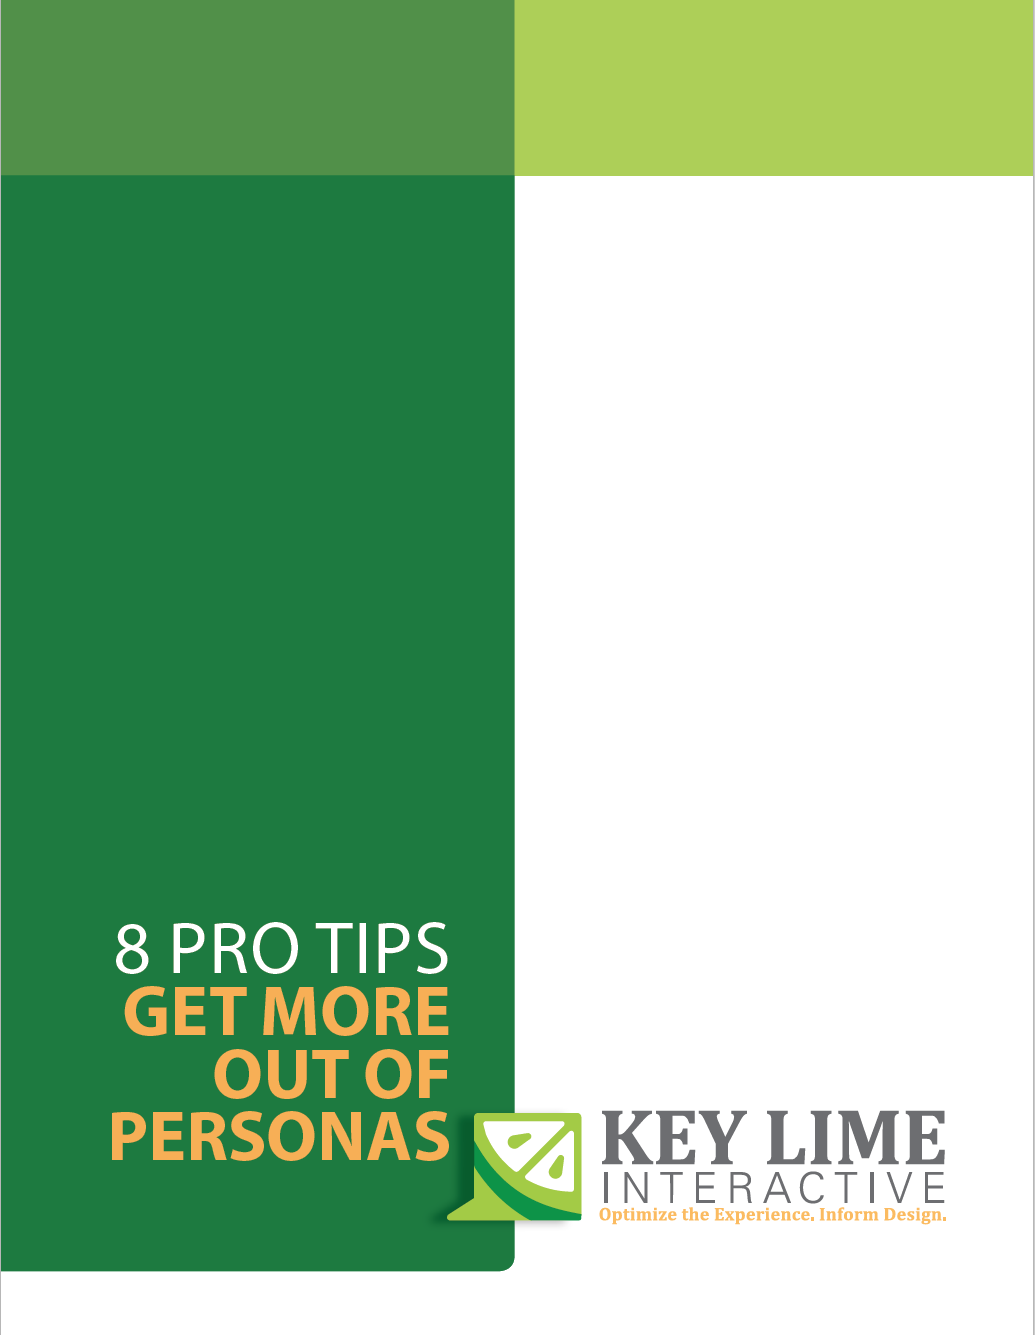 8 PRO TIPS GET MORE OUT OF PERSONAS